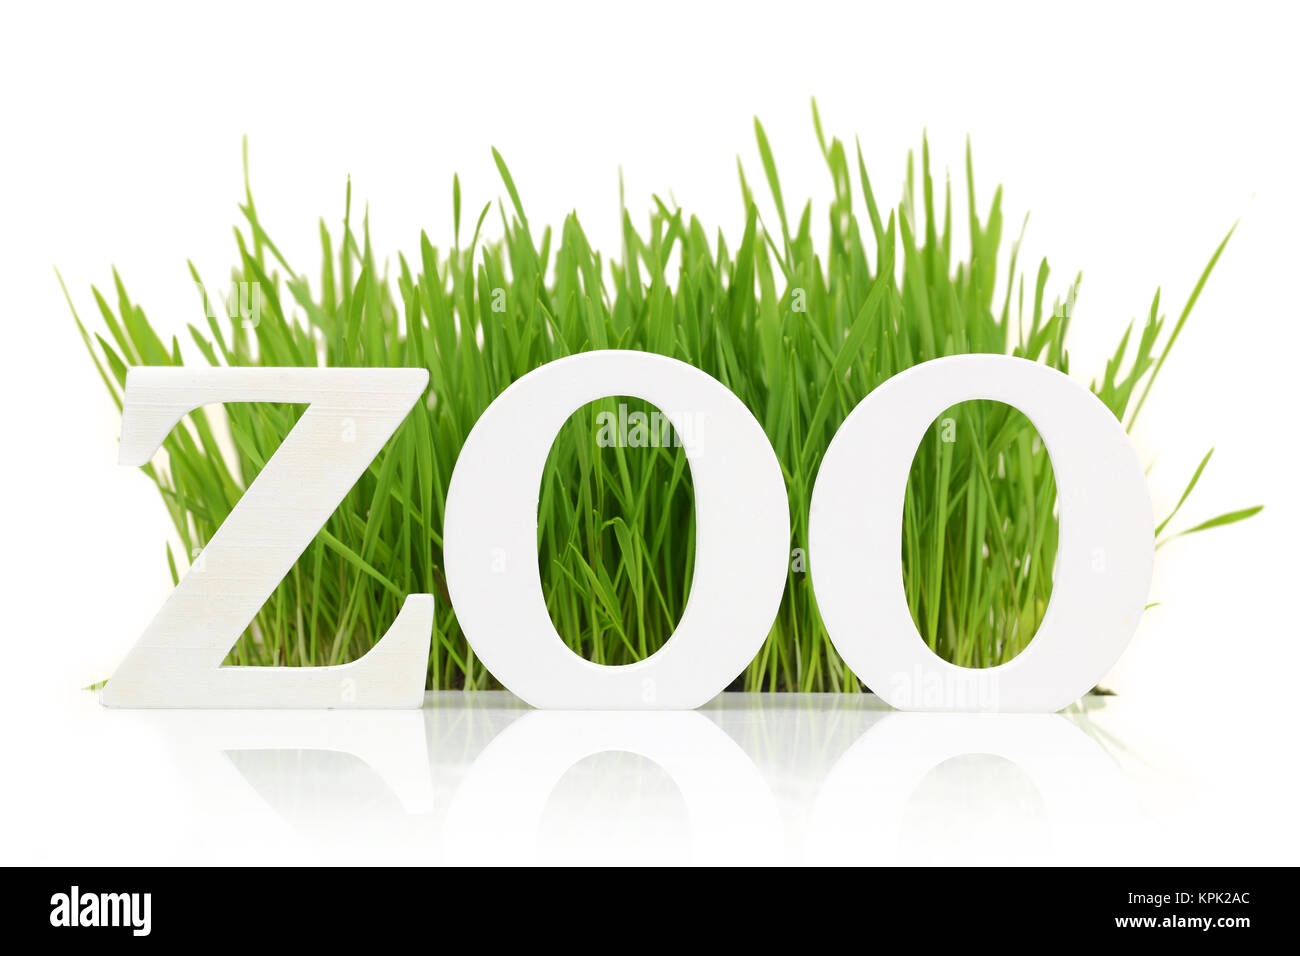 Word 'Zoo' with fresh grass isolated on white - Stock Image